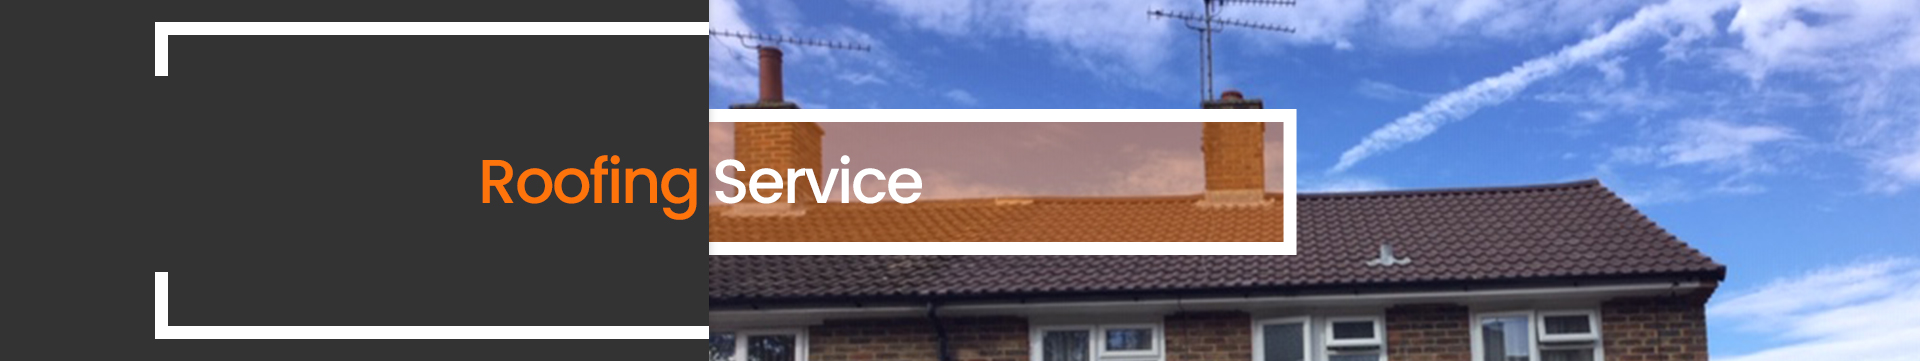 Roofing Services Banner